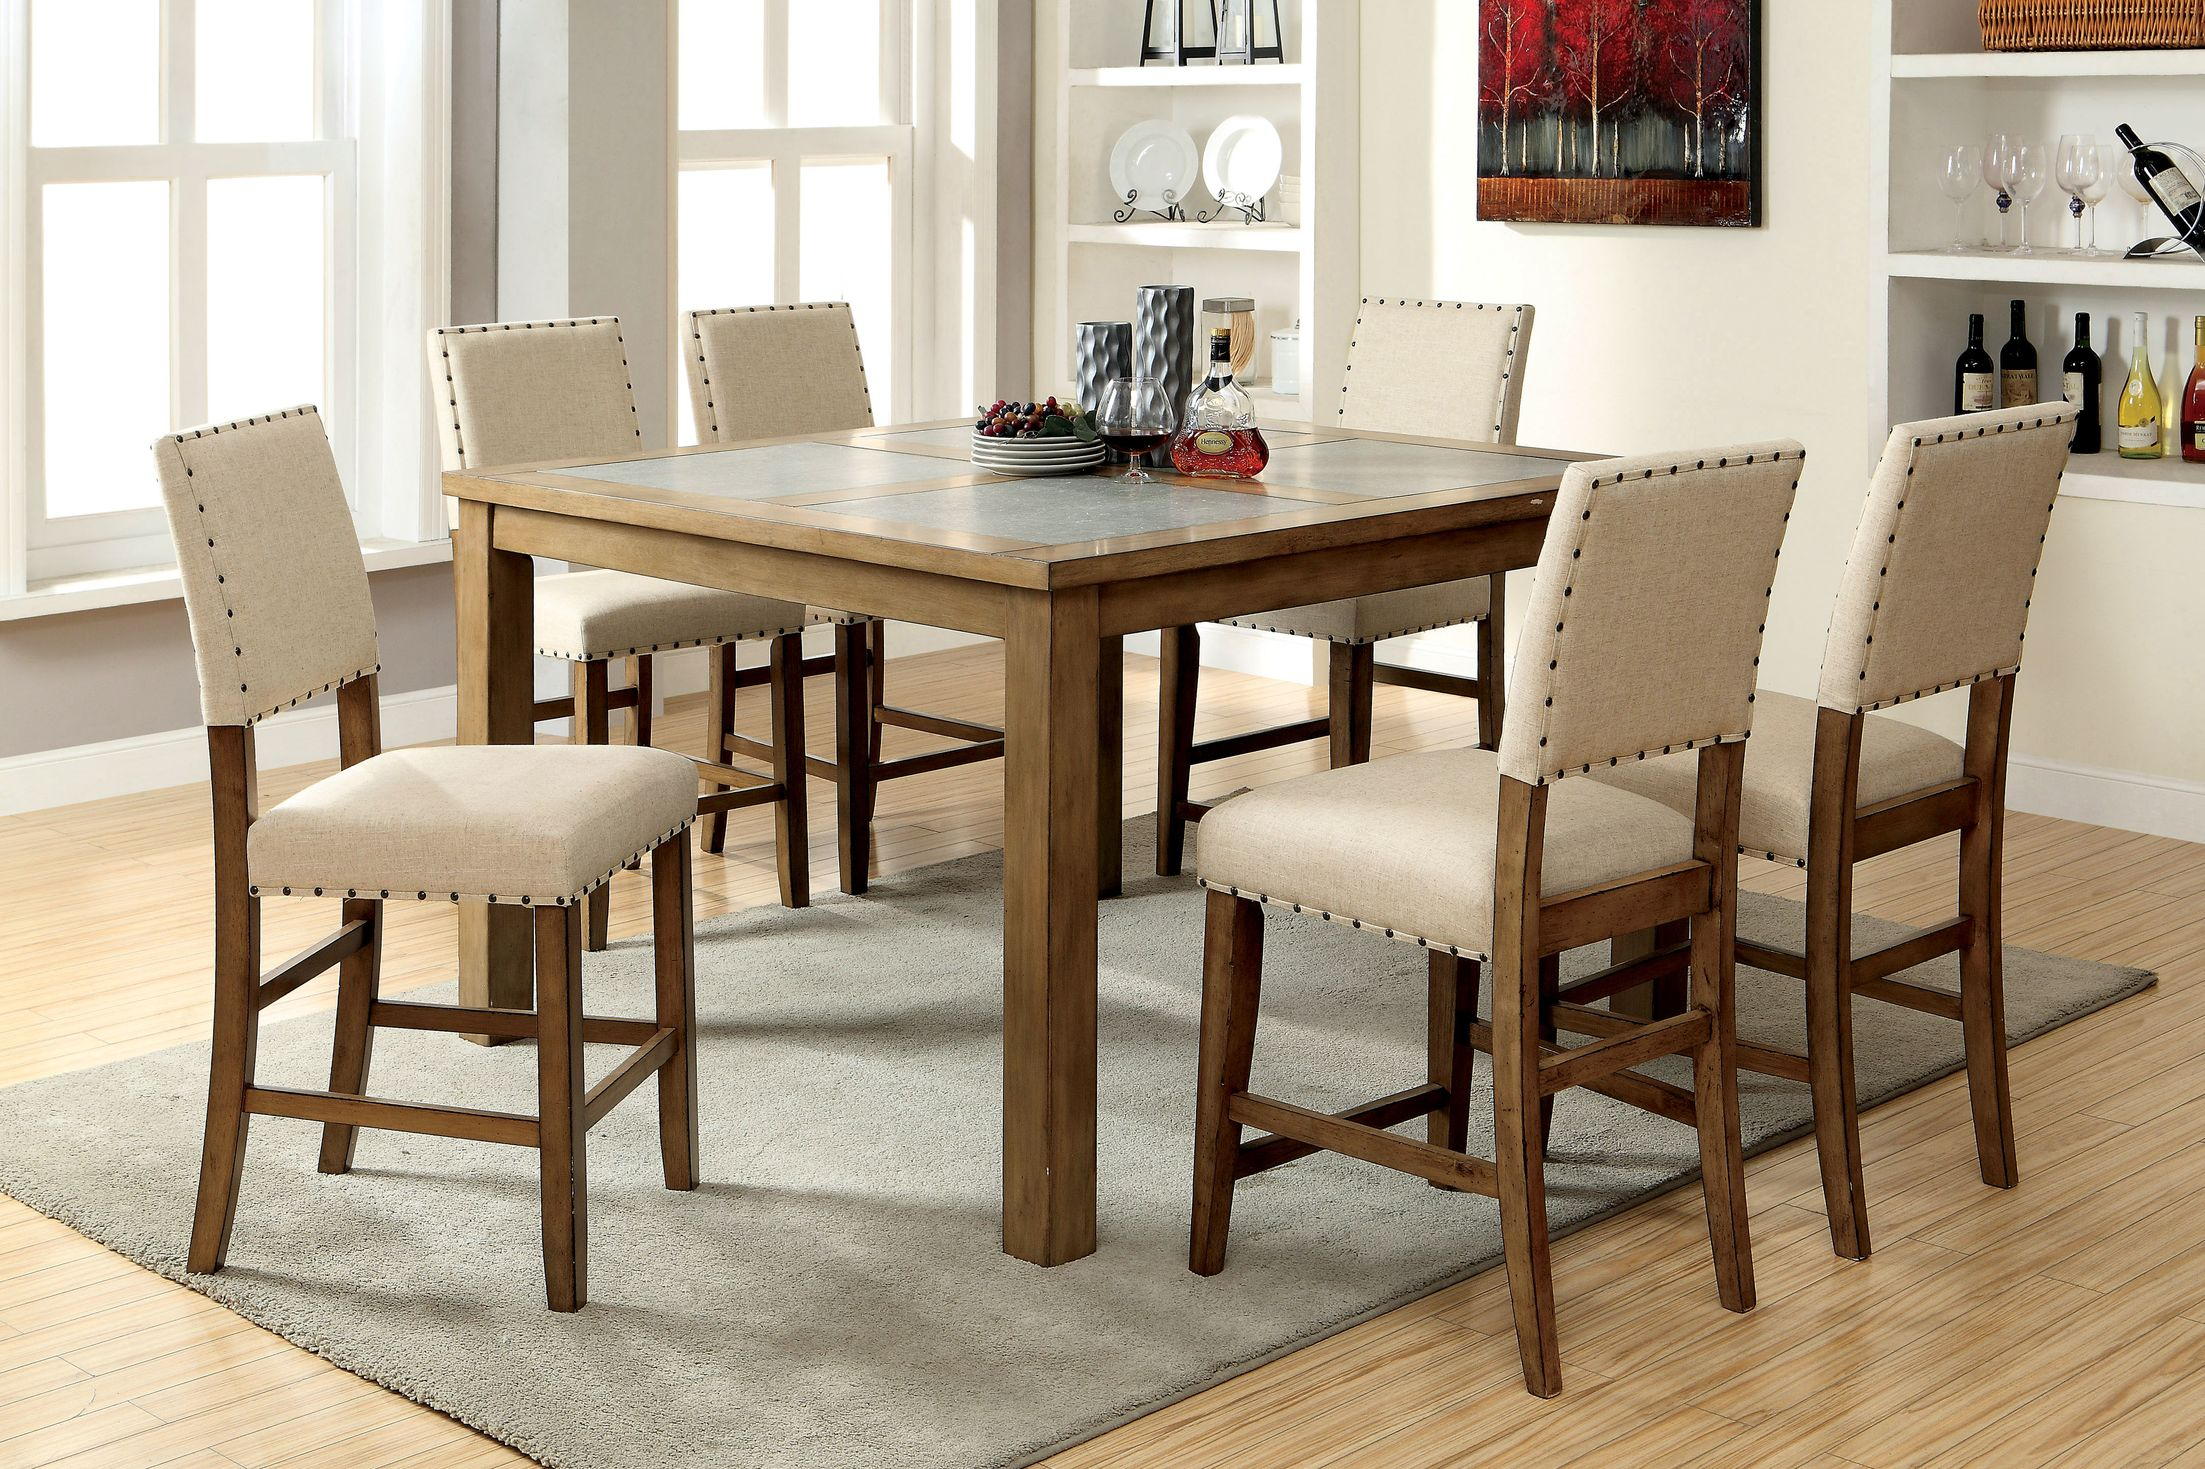 Dining Tables Crafton Counter Height Pub Dining Table March 2019 Pertaining To Well Known Castellanos Modern 5 Piece Counter Height Dining Sets (View 11 of 20)